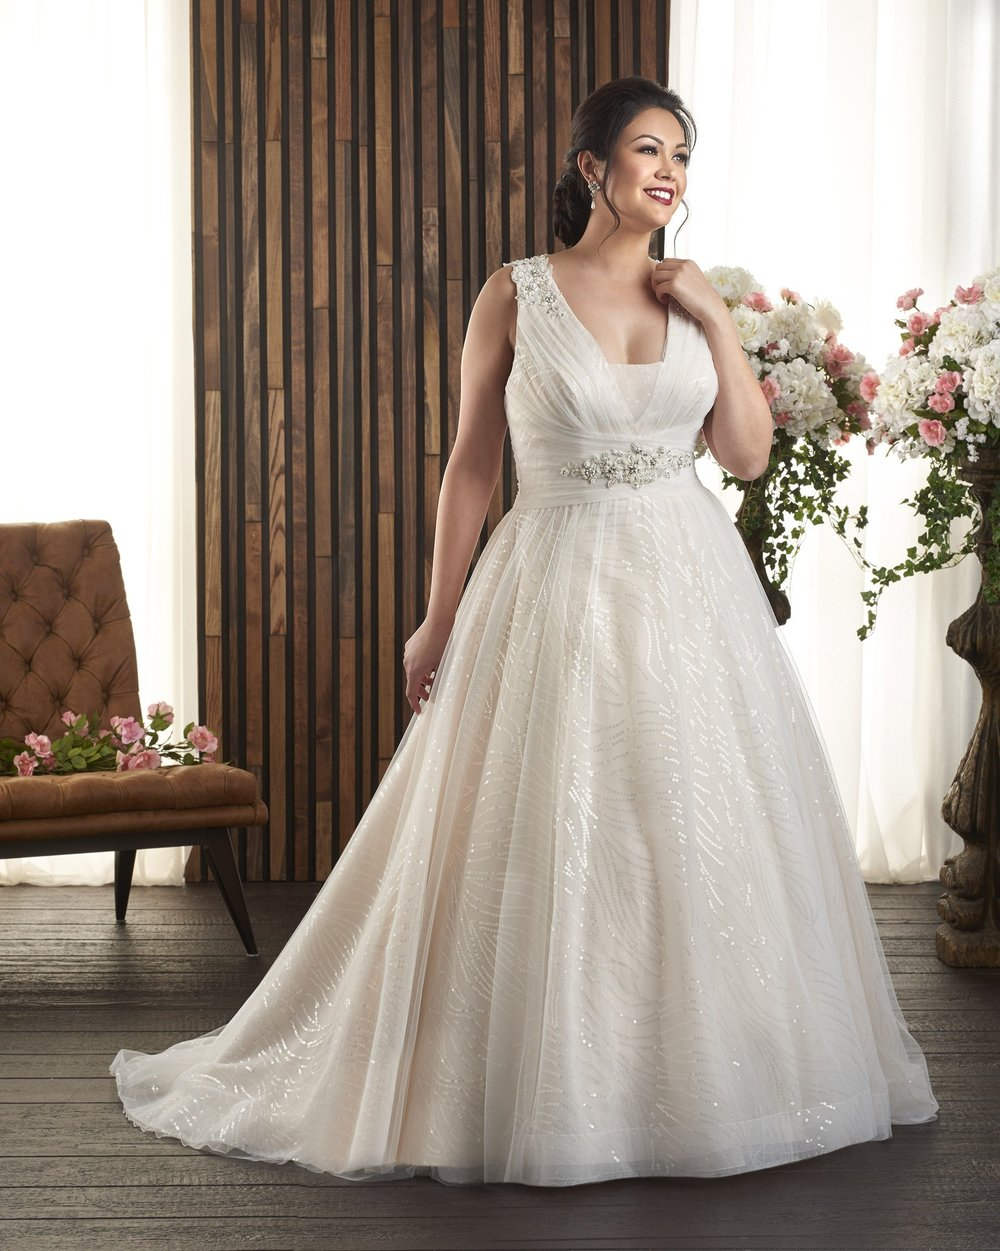 BonnyBridal-BridesbyYoung-PlusSizeWeddingDress-1725.jpg